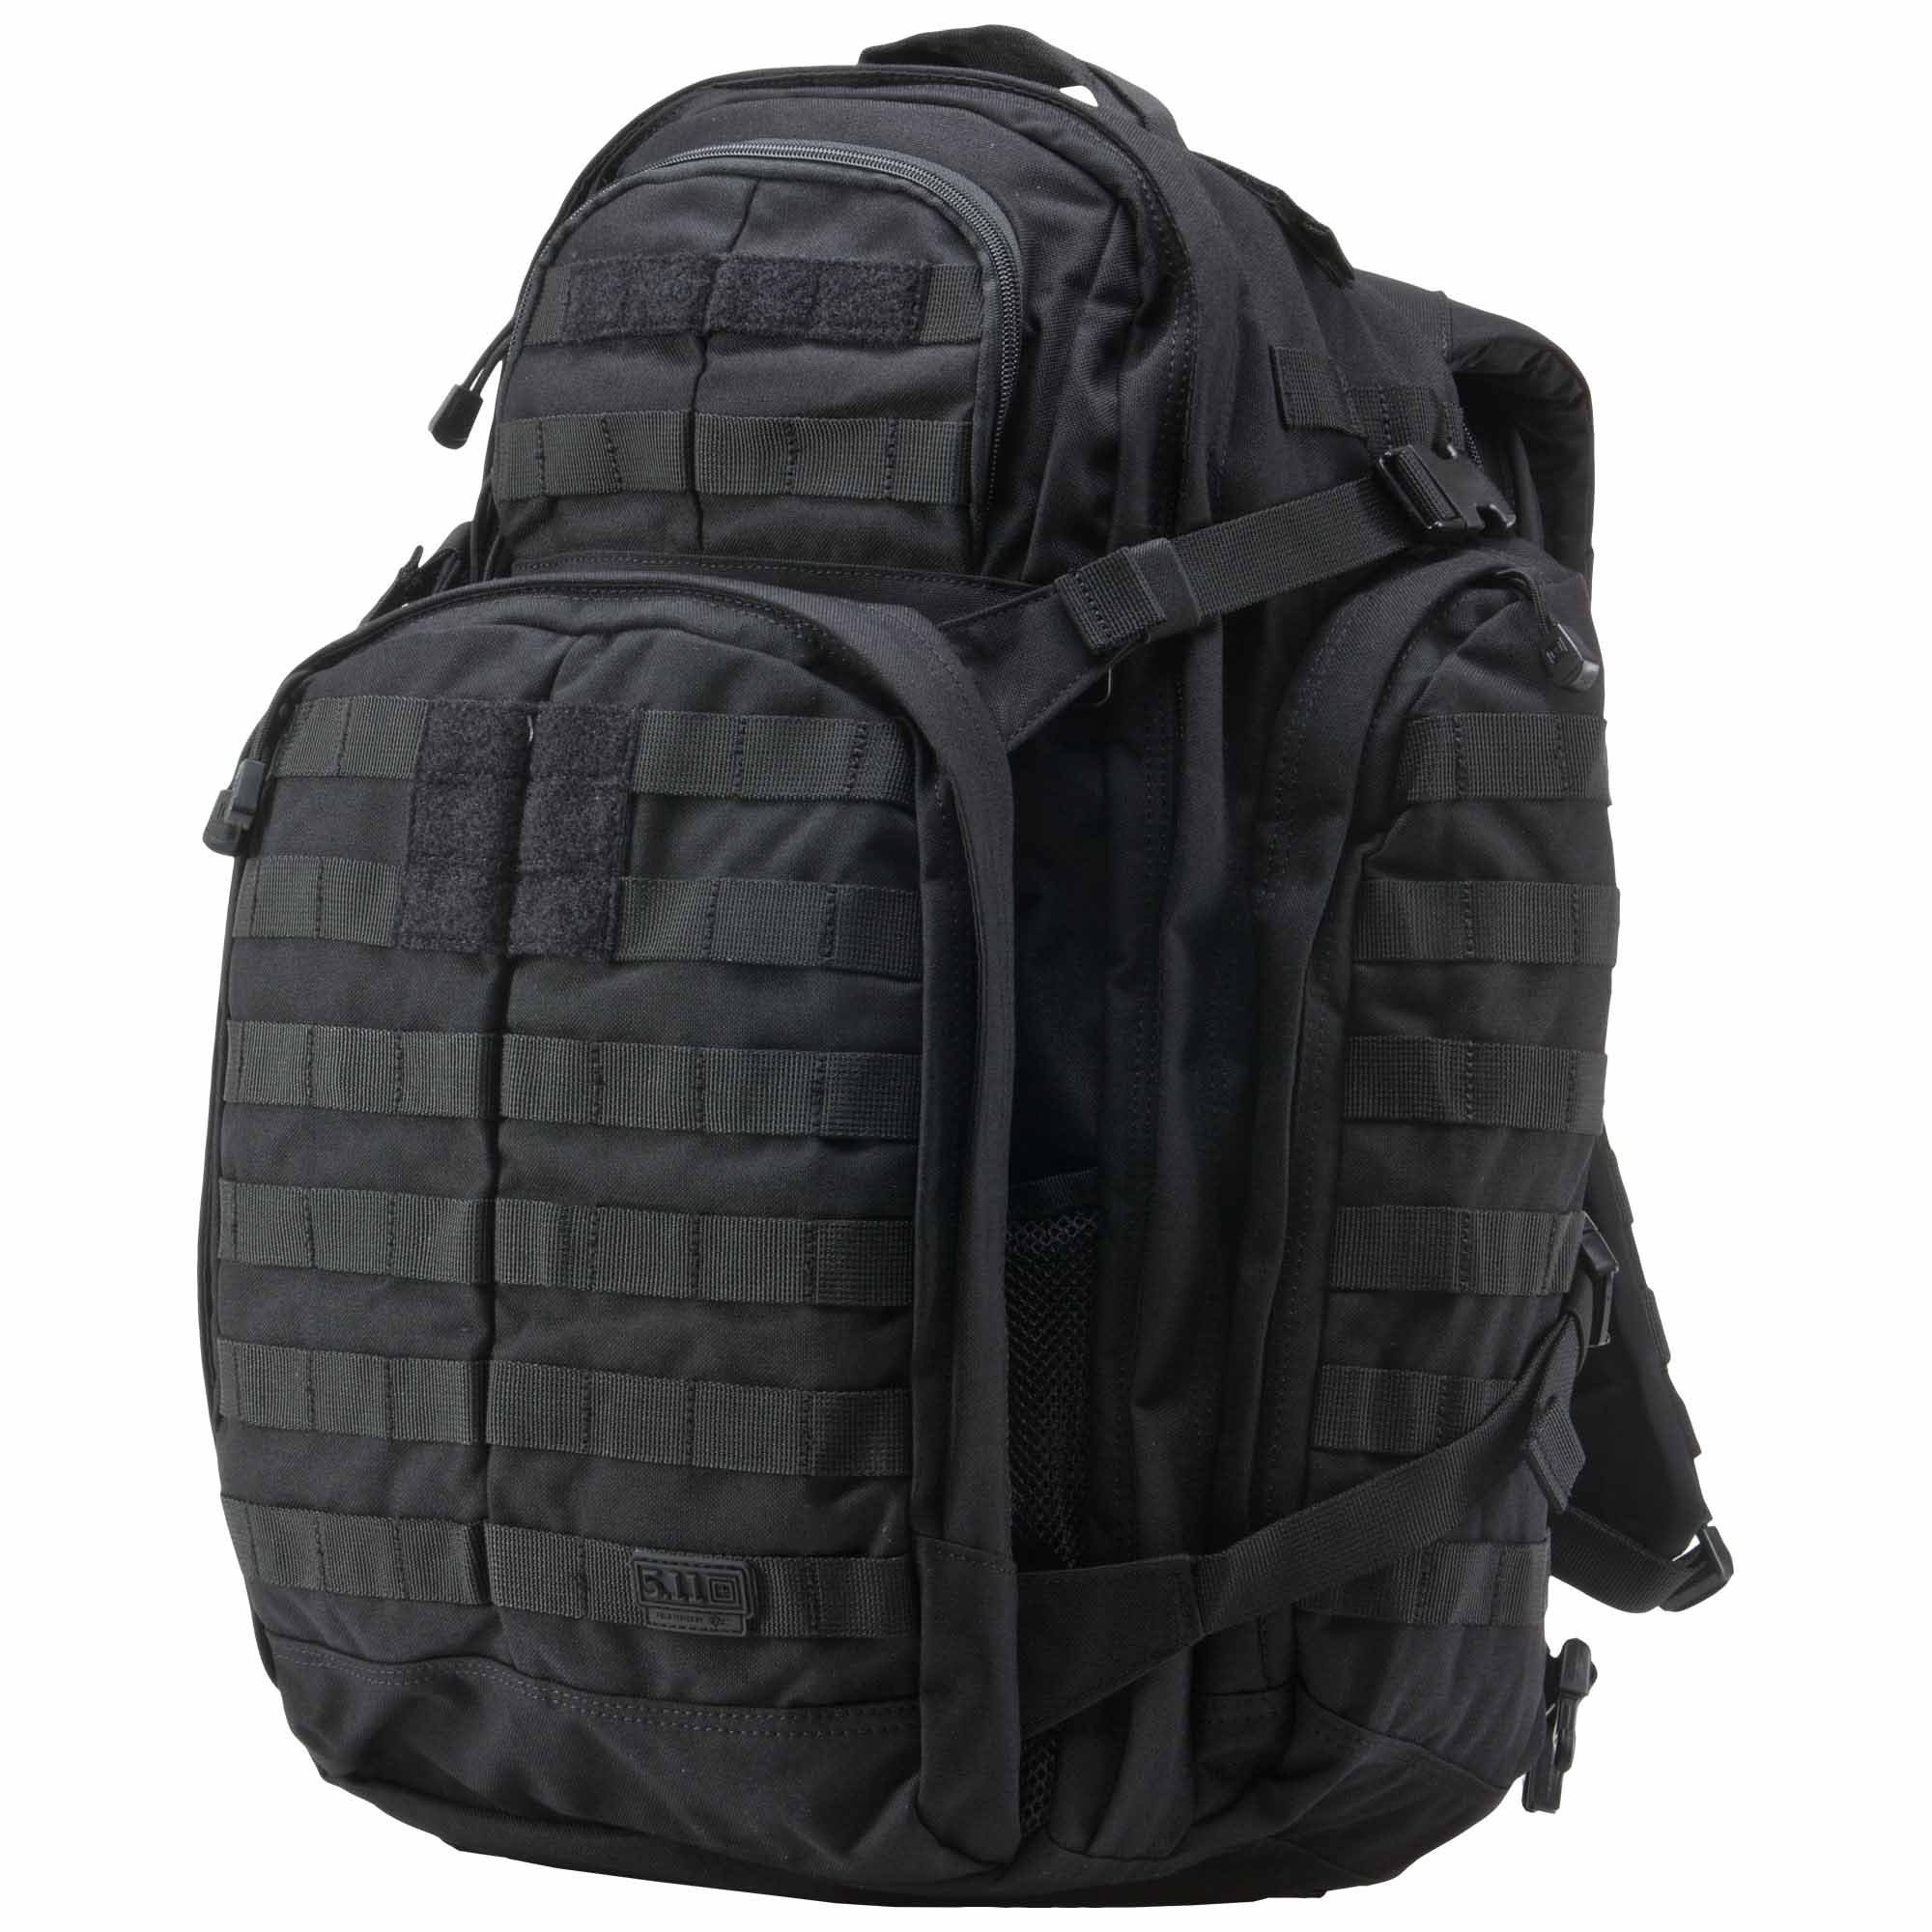 Best Rated In Tactical Bags Packs Helpful Customer Reviews Sarung Hp Pounch Army 511 Rush72 Backpack For Military Bug Out Bag Large Style 58602